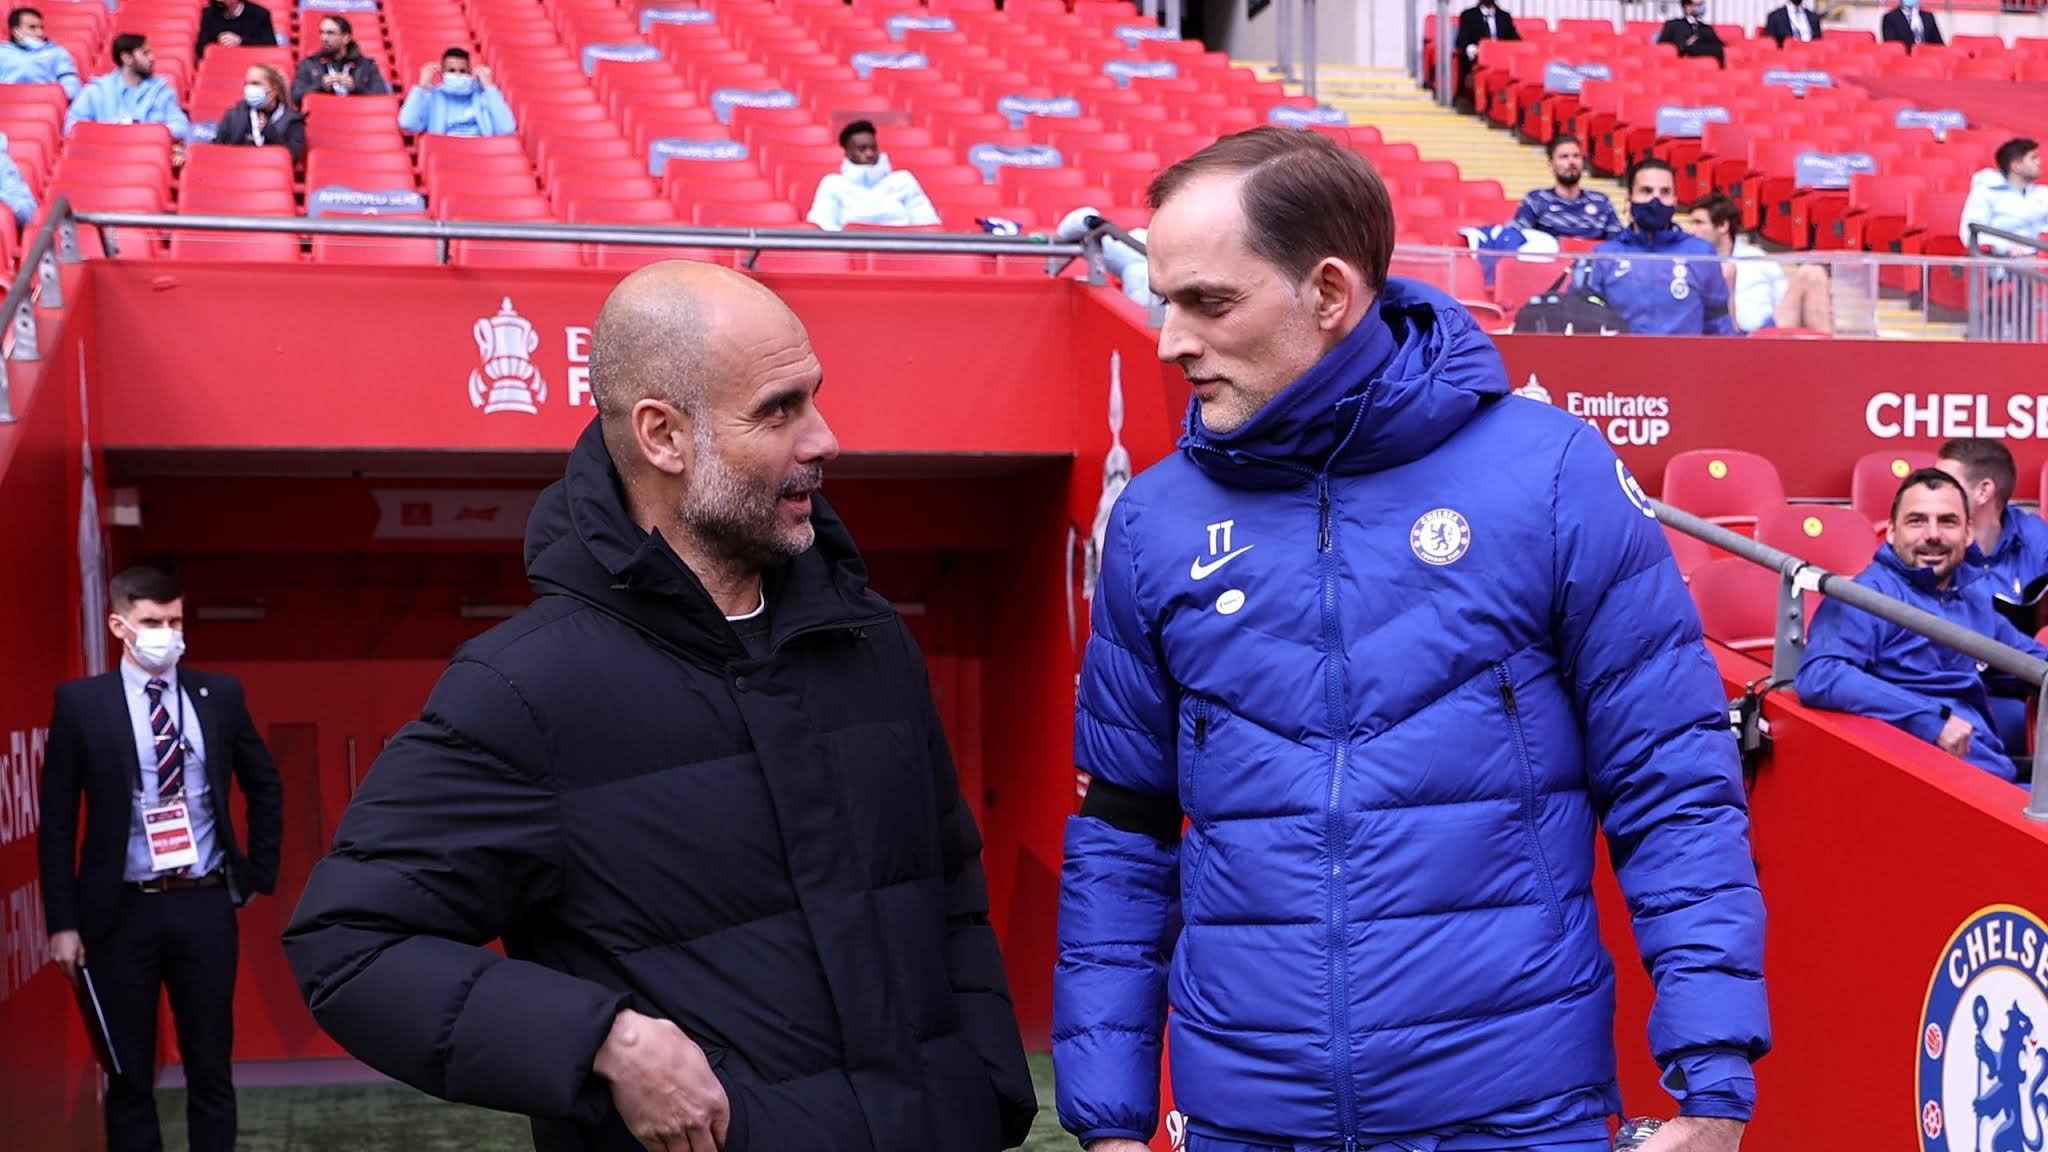 Thomas Tuchel faces Pep Guardiola in the headline match between Man City and Chelsea